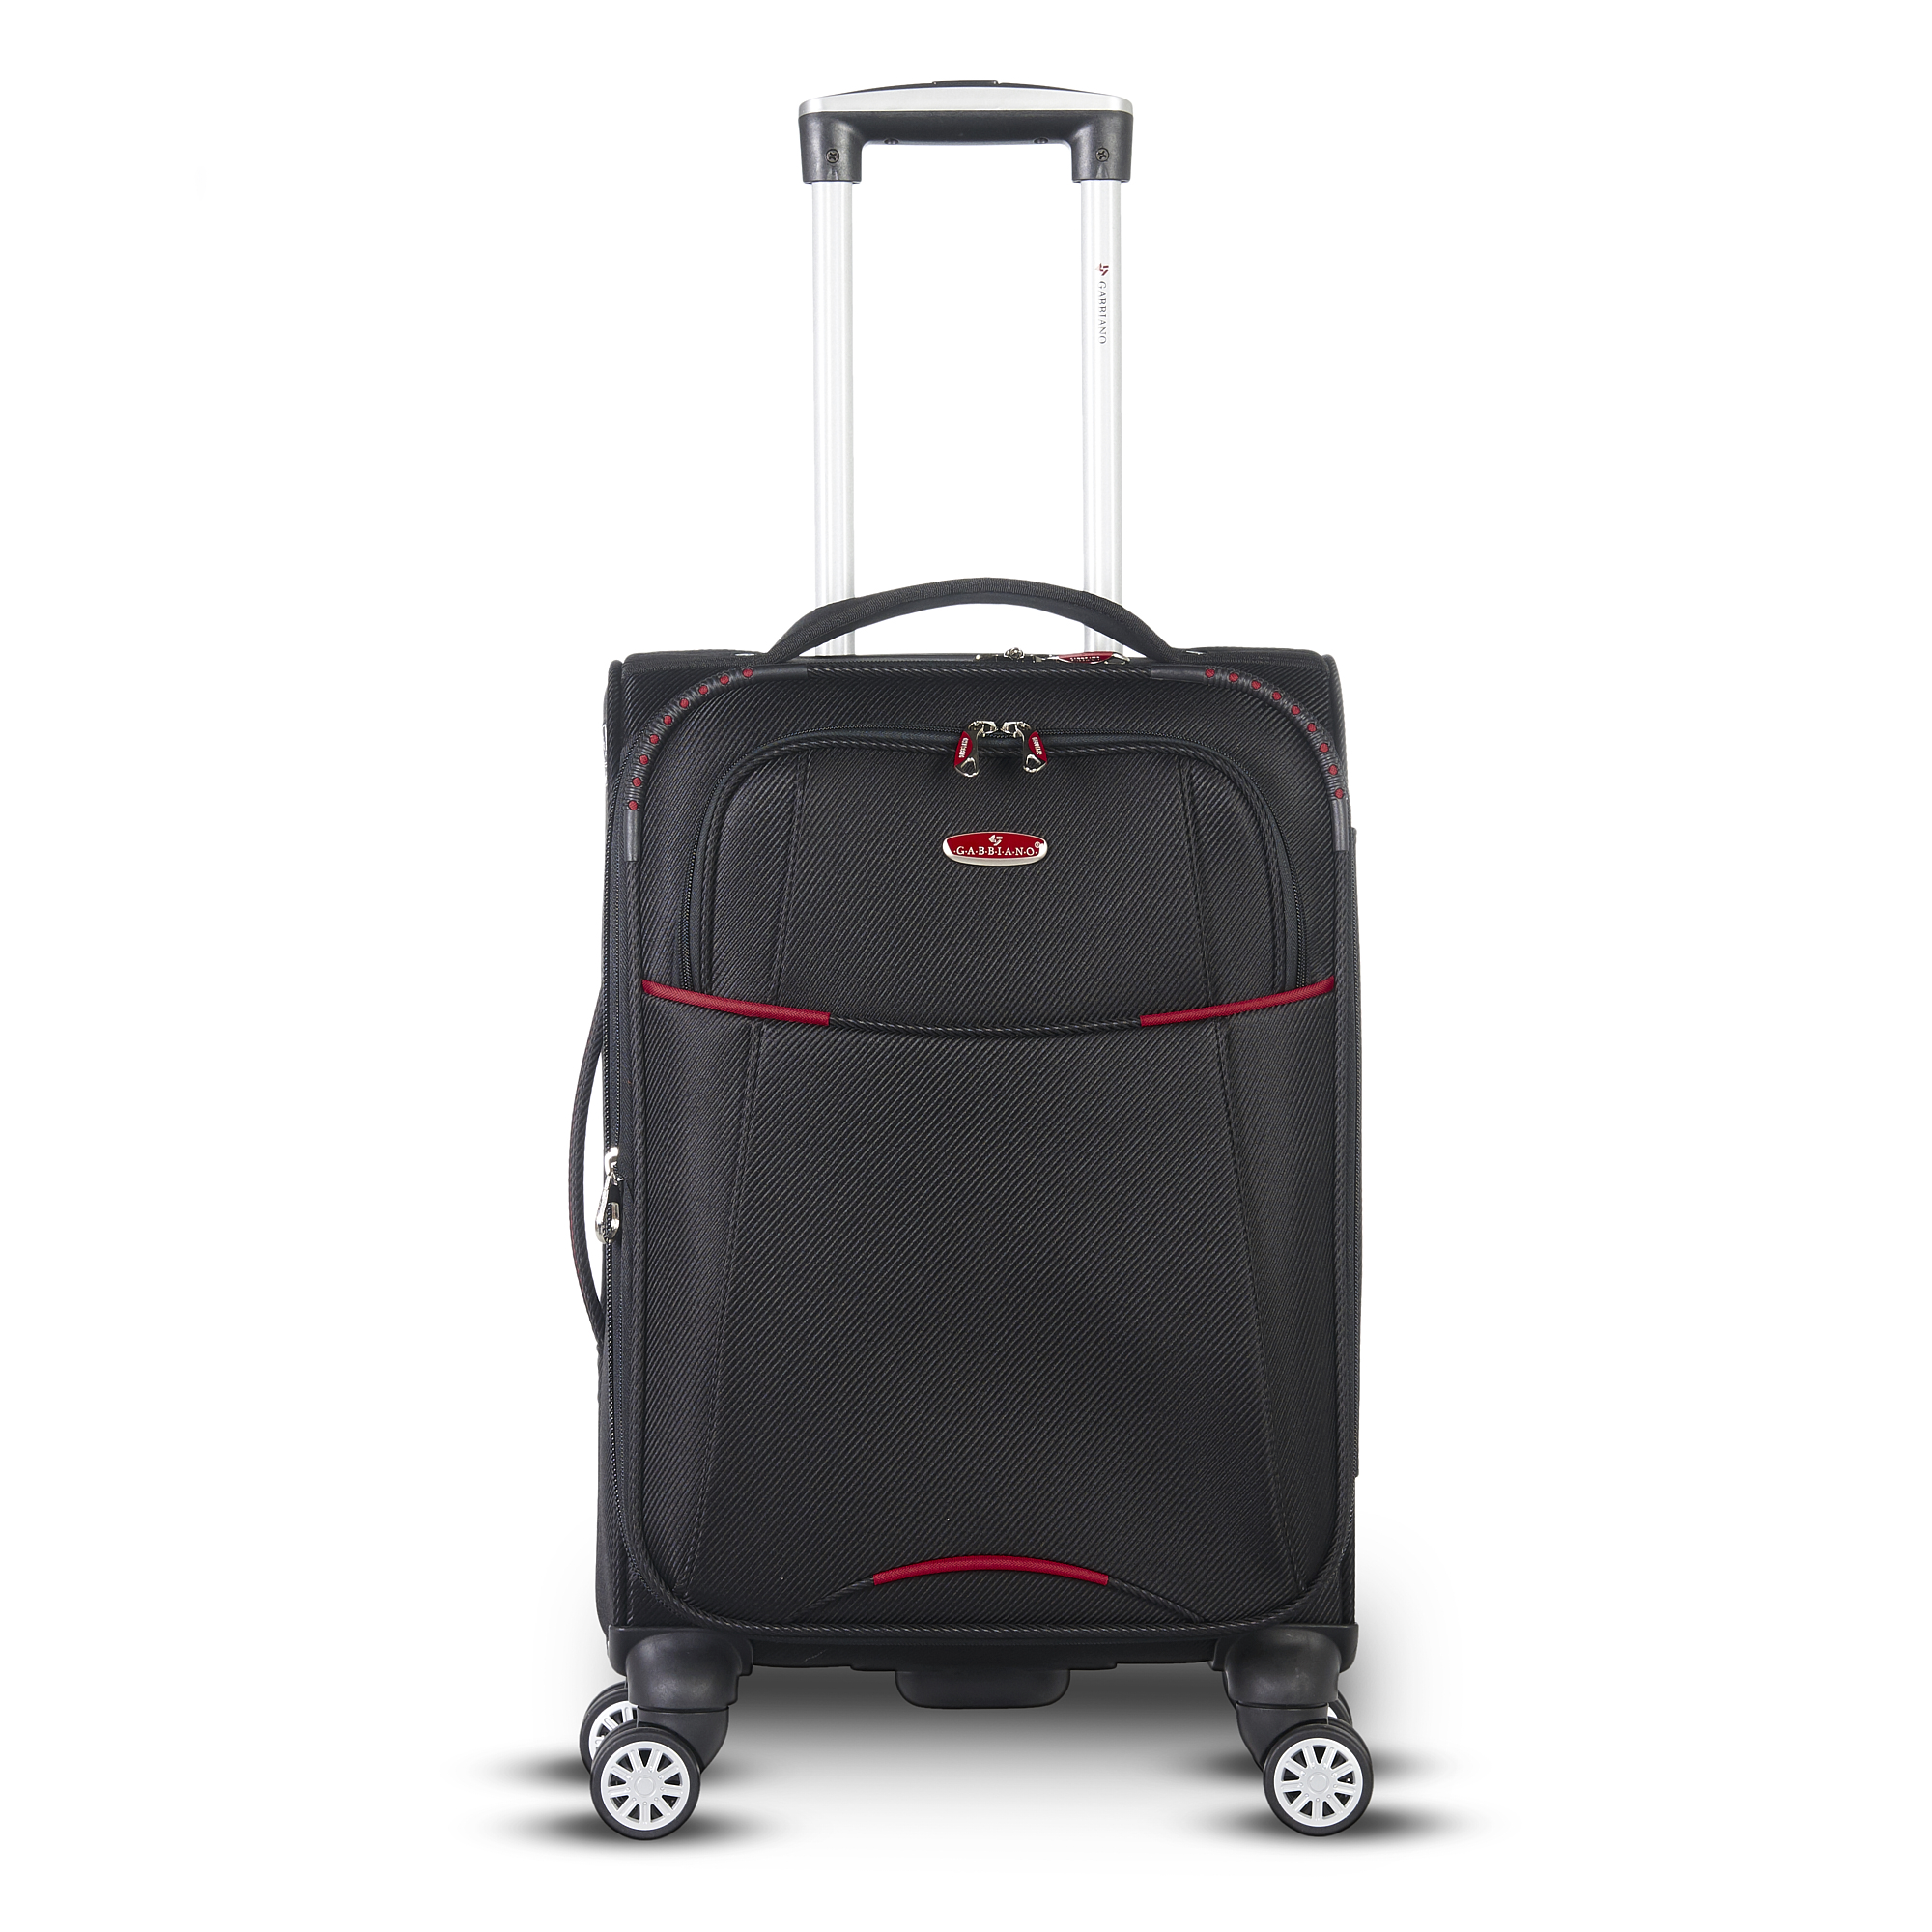 LG_GA4010_RED_FRONT